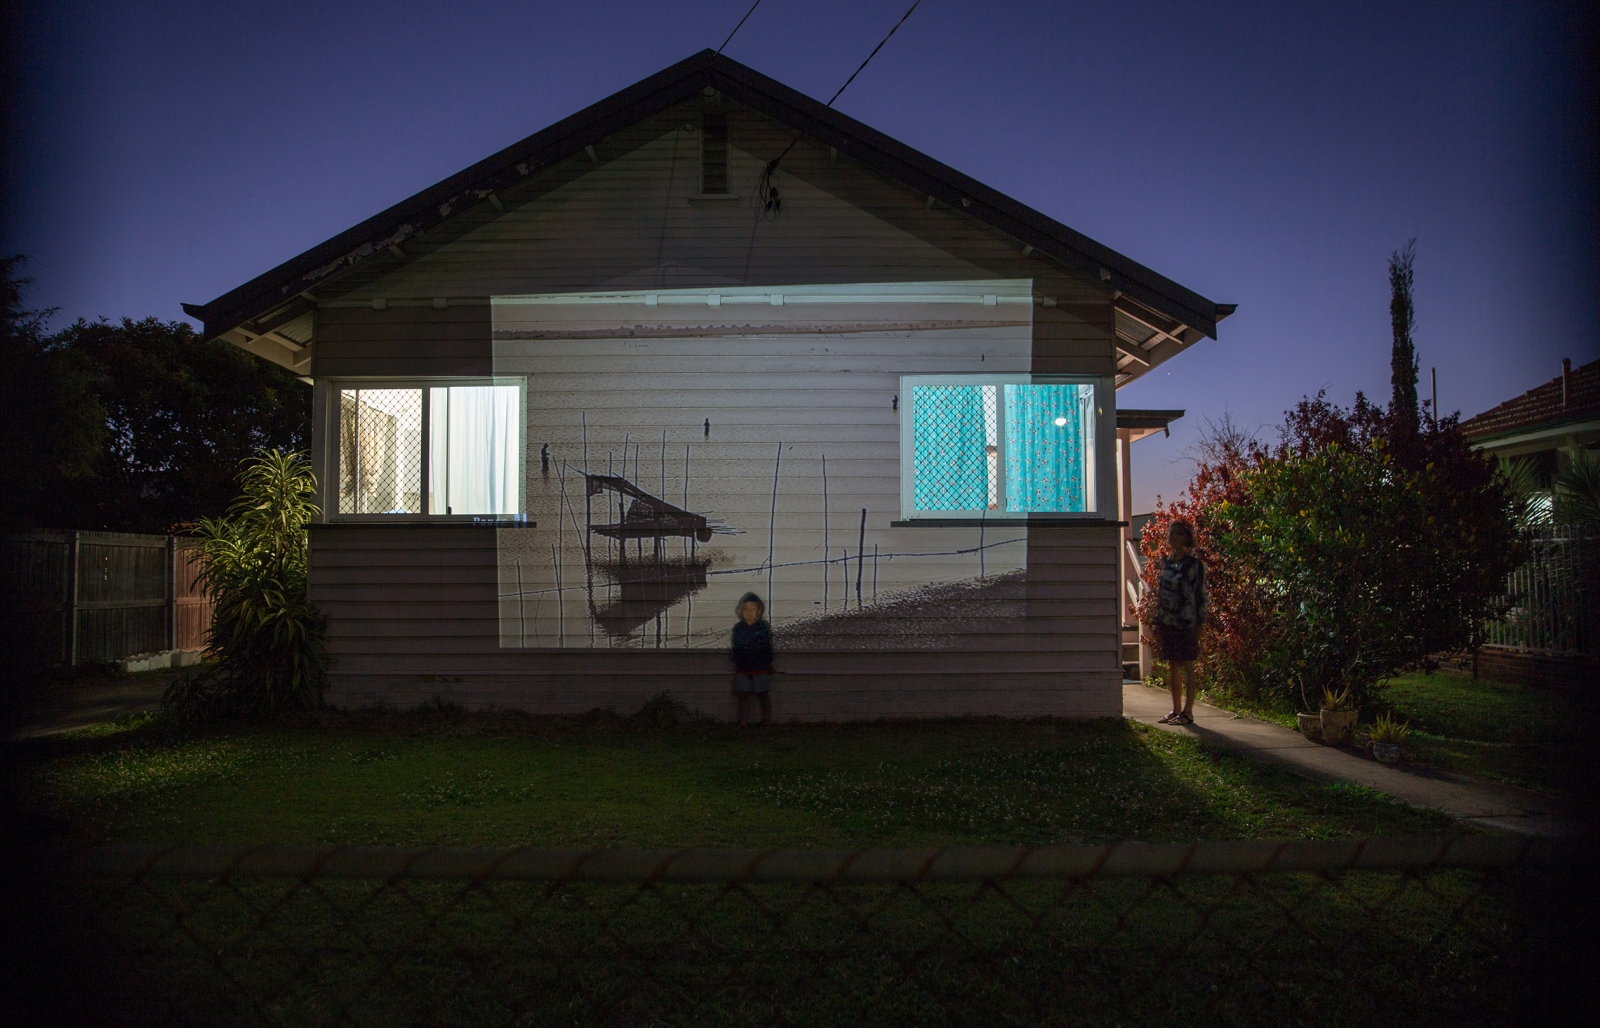 A projection of fishing families in Myanmar. This image has been projected onto the side of a house where a woman and her nephew stand outside their home in Brisbane, Australia. Fish is a staple of the Burmese diet and many who have resettled have told stories of getting caught fishing illegally fishing in newly settled areas as it can be difficult to navigate the local rules and regulations.  QUEENSLAND, AUSTRALIA -  September 2015.